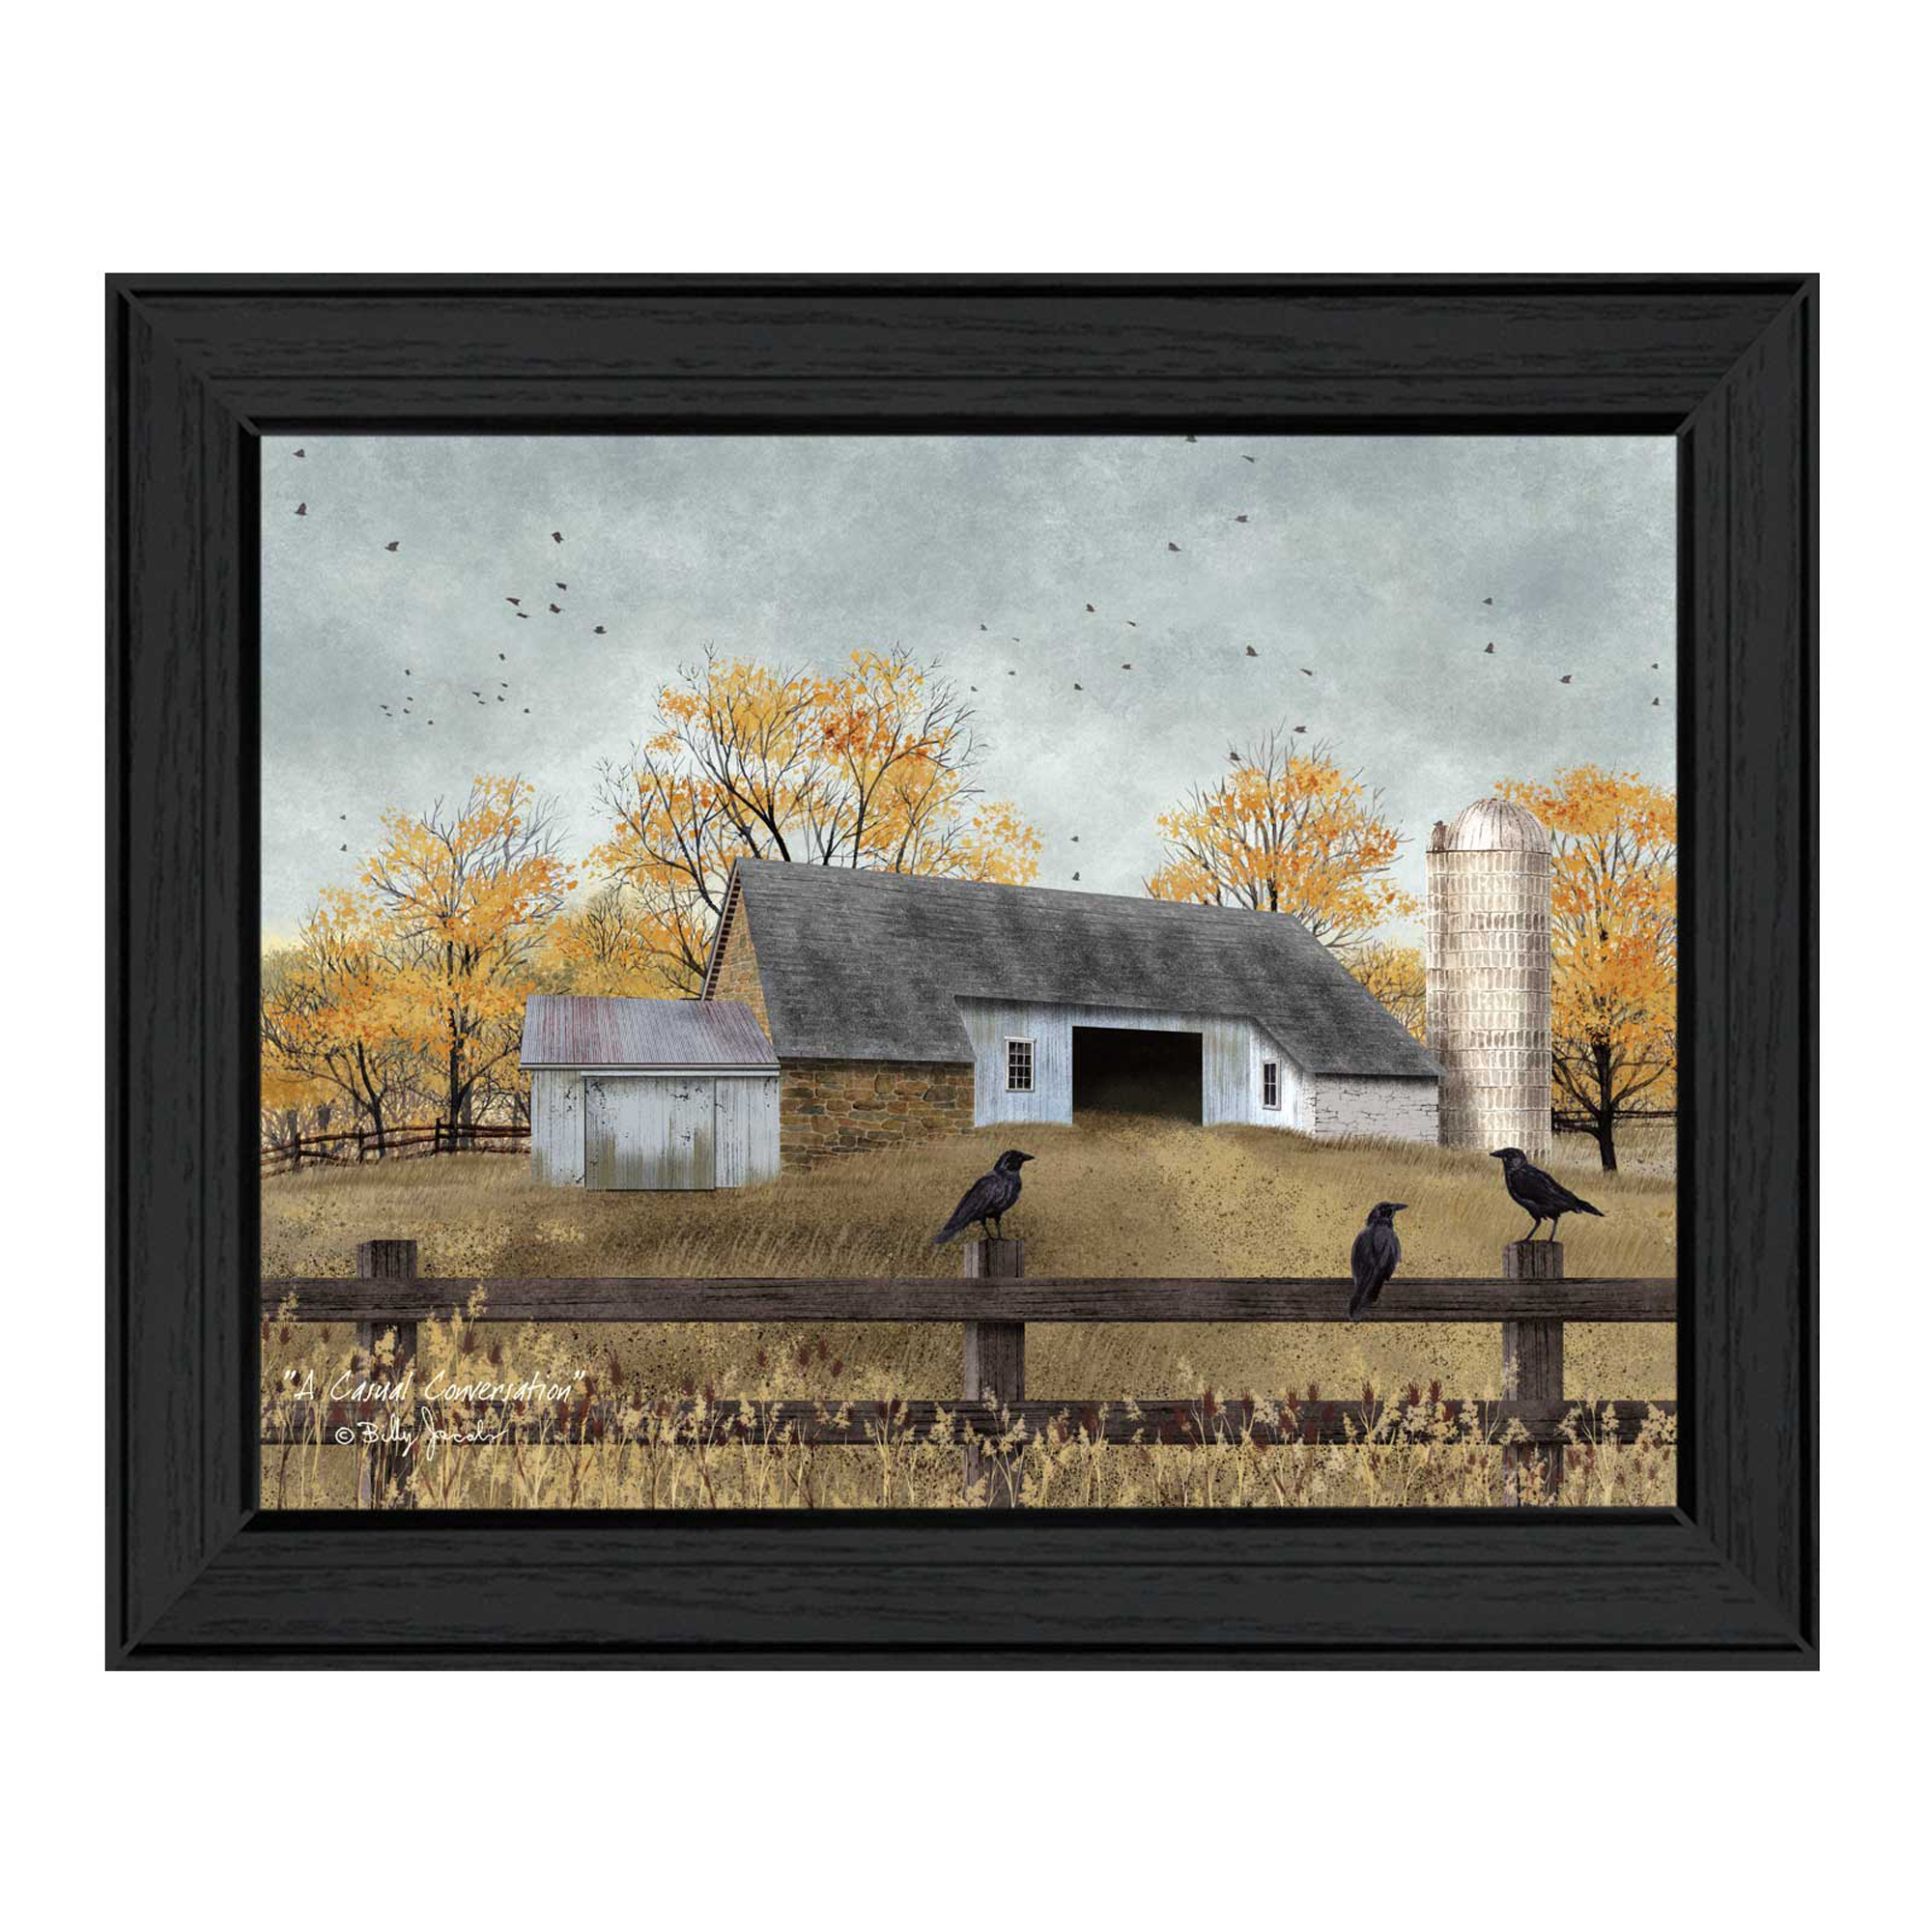 "Bj1095-405 A Casual Conversation is a 18"" x 14"" framed print by artist Billy Jacobs. This artwork features a barn and silo in a fenced in area with blackbirds sitting on the fence railing. To view a matching vignette of this print search: V219-405. Framed prints are UV coated and arrives ready to hang. * Made in the USA * Women Owned (Wbe) * Textured Artwork with a 'rolled on' acid free acrylic coating to create a canvas painting effect. No glass is necessary. * UV protectant coating protects artwork from fading. * MDF moulding adds natural beauty to the framed art. Frame is keyholed for ease of hanging."